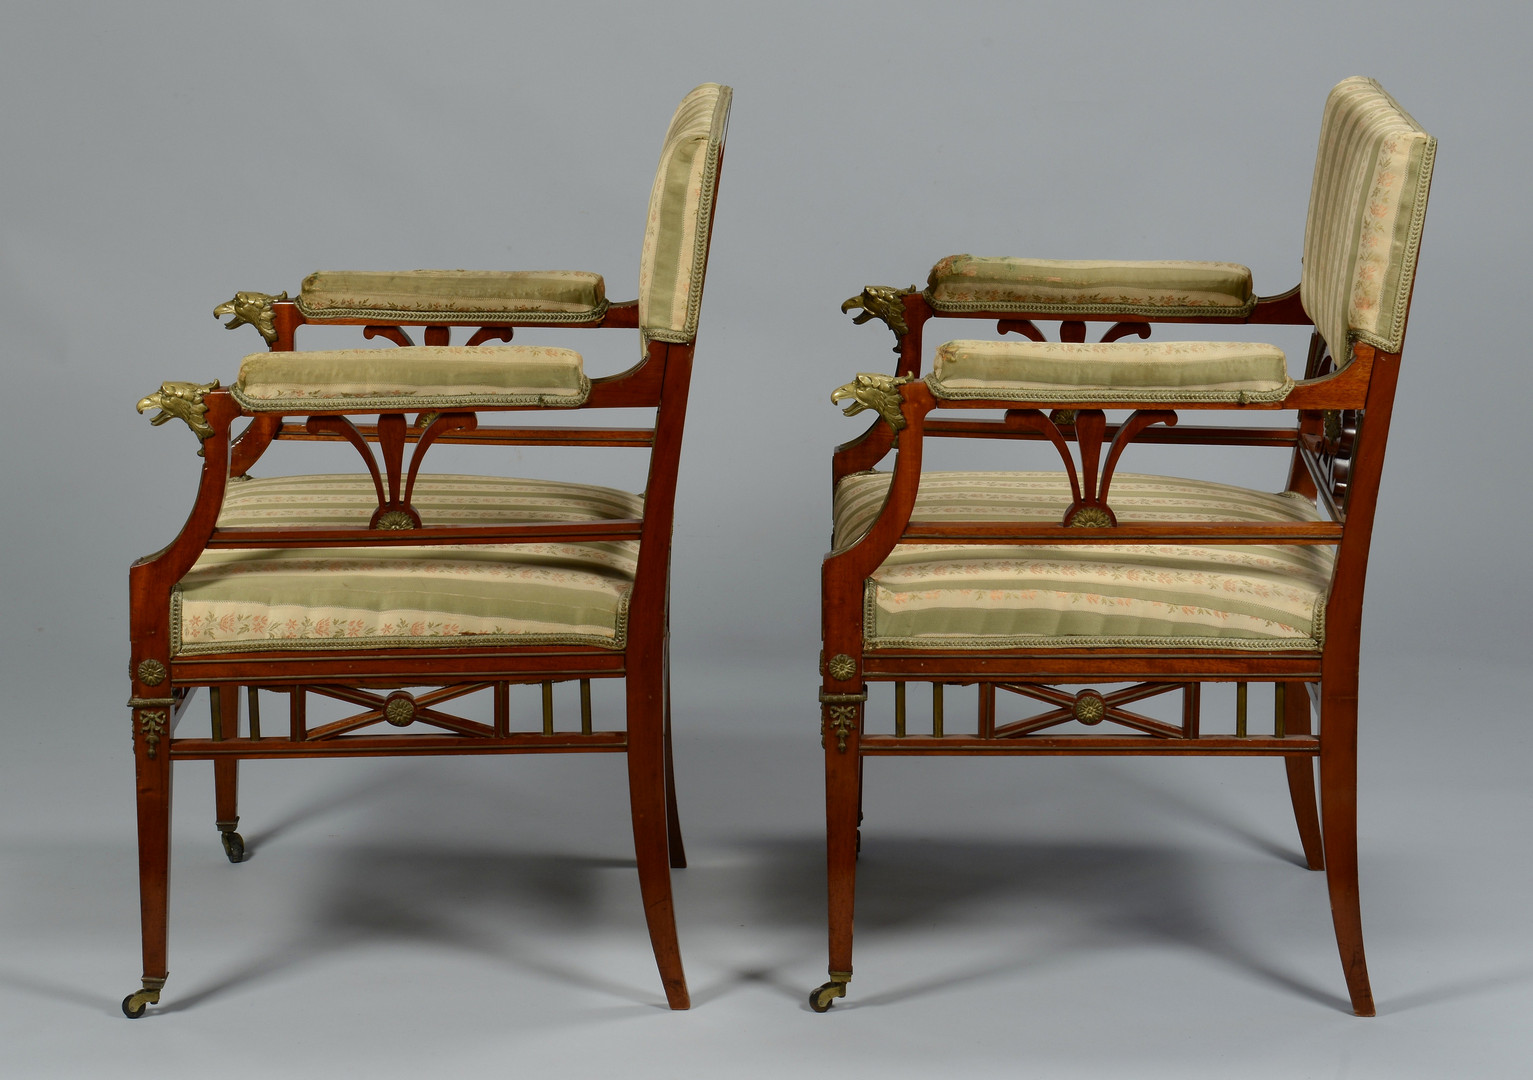 Lot 151: Pr. French Empire Style Armchairs